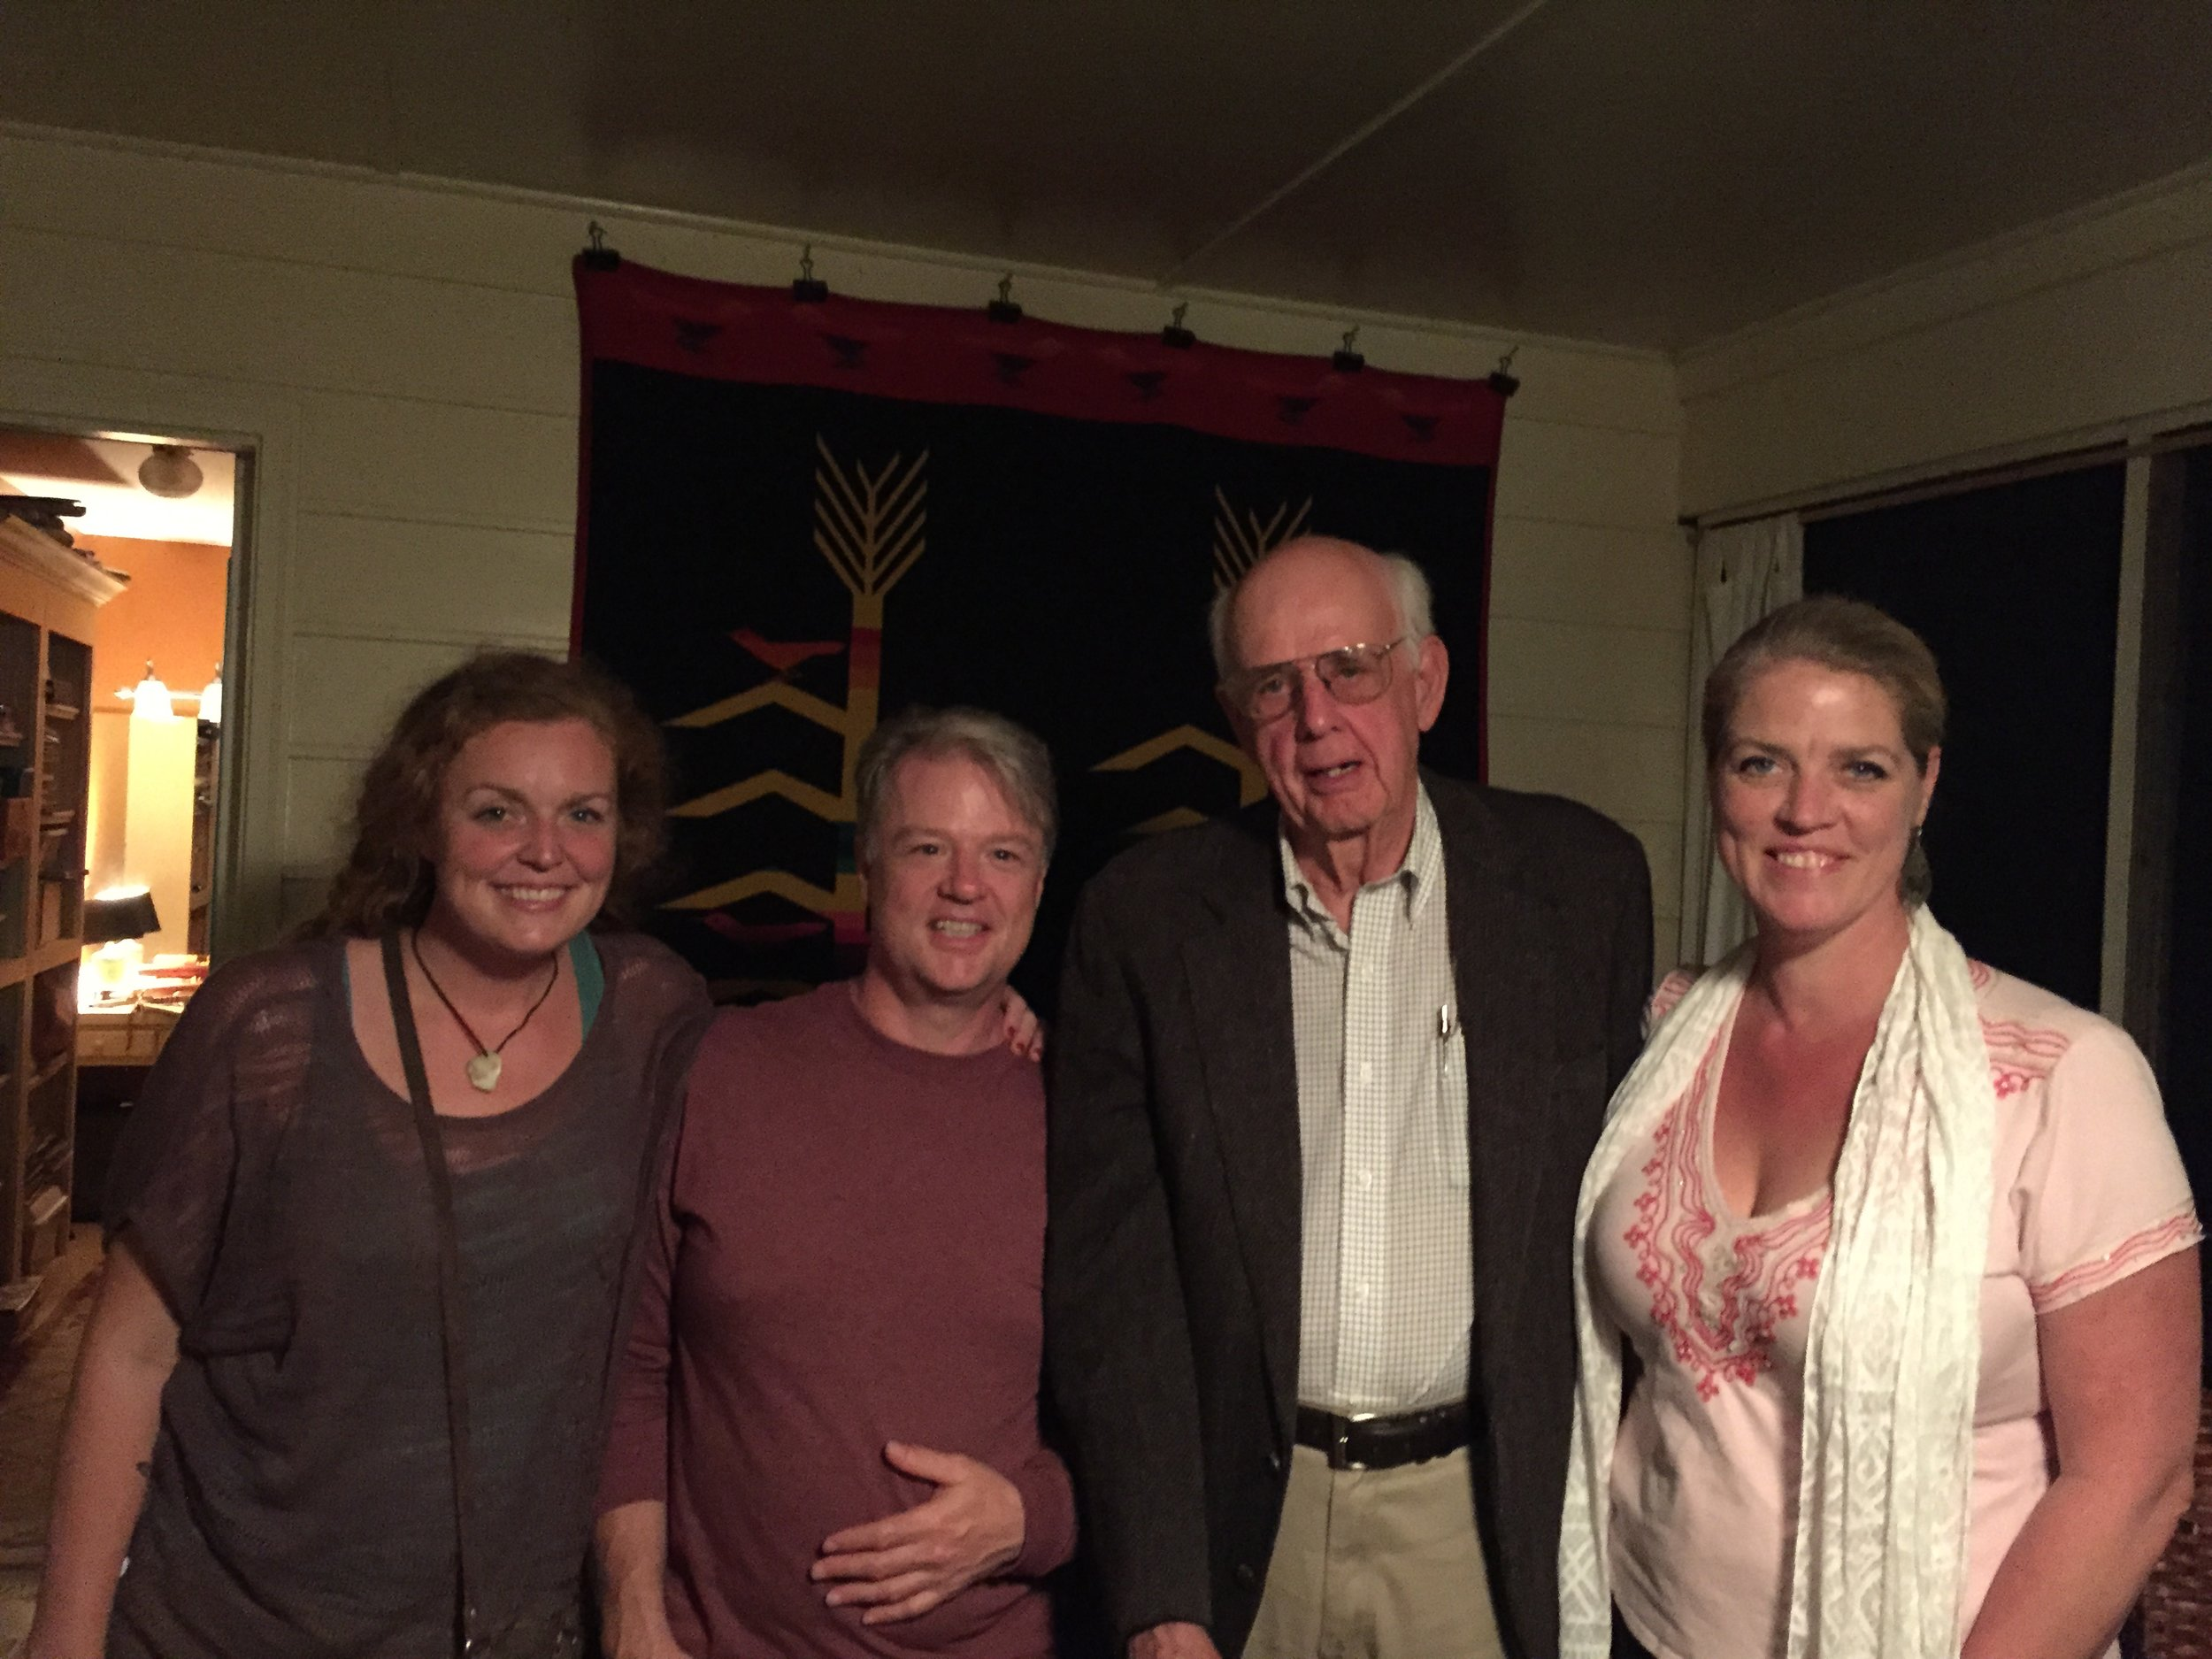 The Berry Center Fundraiser - September, 2015With Wendell Berry, John Gage, Harry Pickens, Michael Cleveland, John Paul Wright and Tommy Lee. With special guest Darrell Scott.